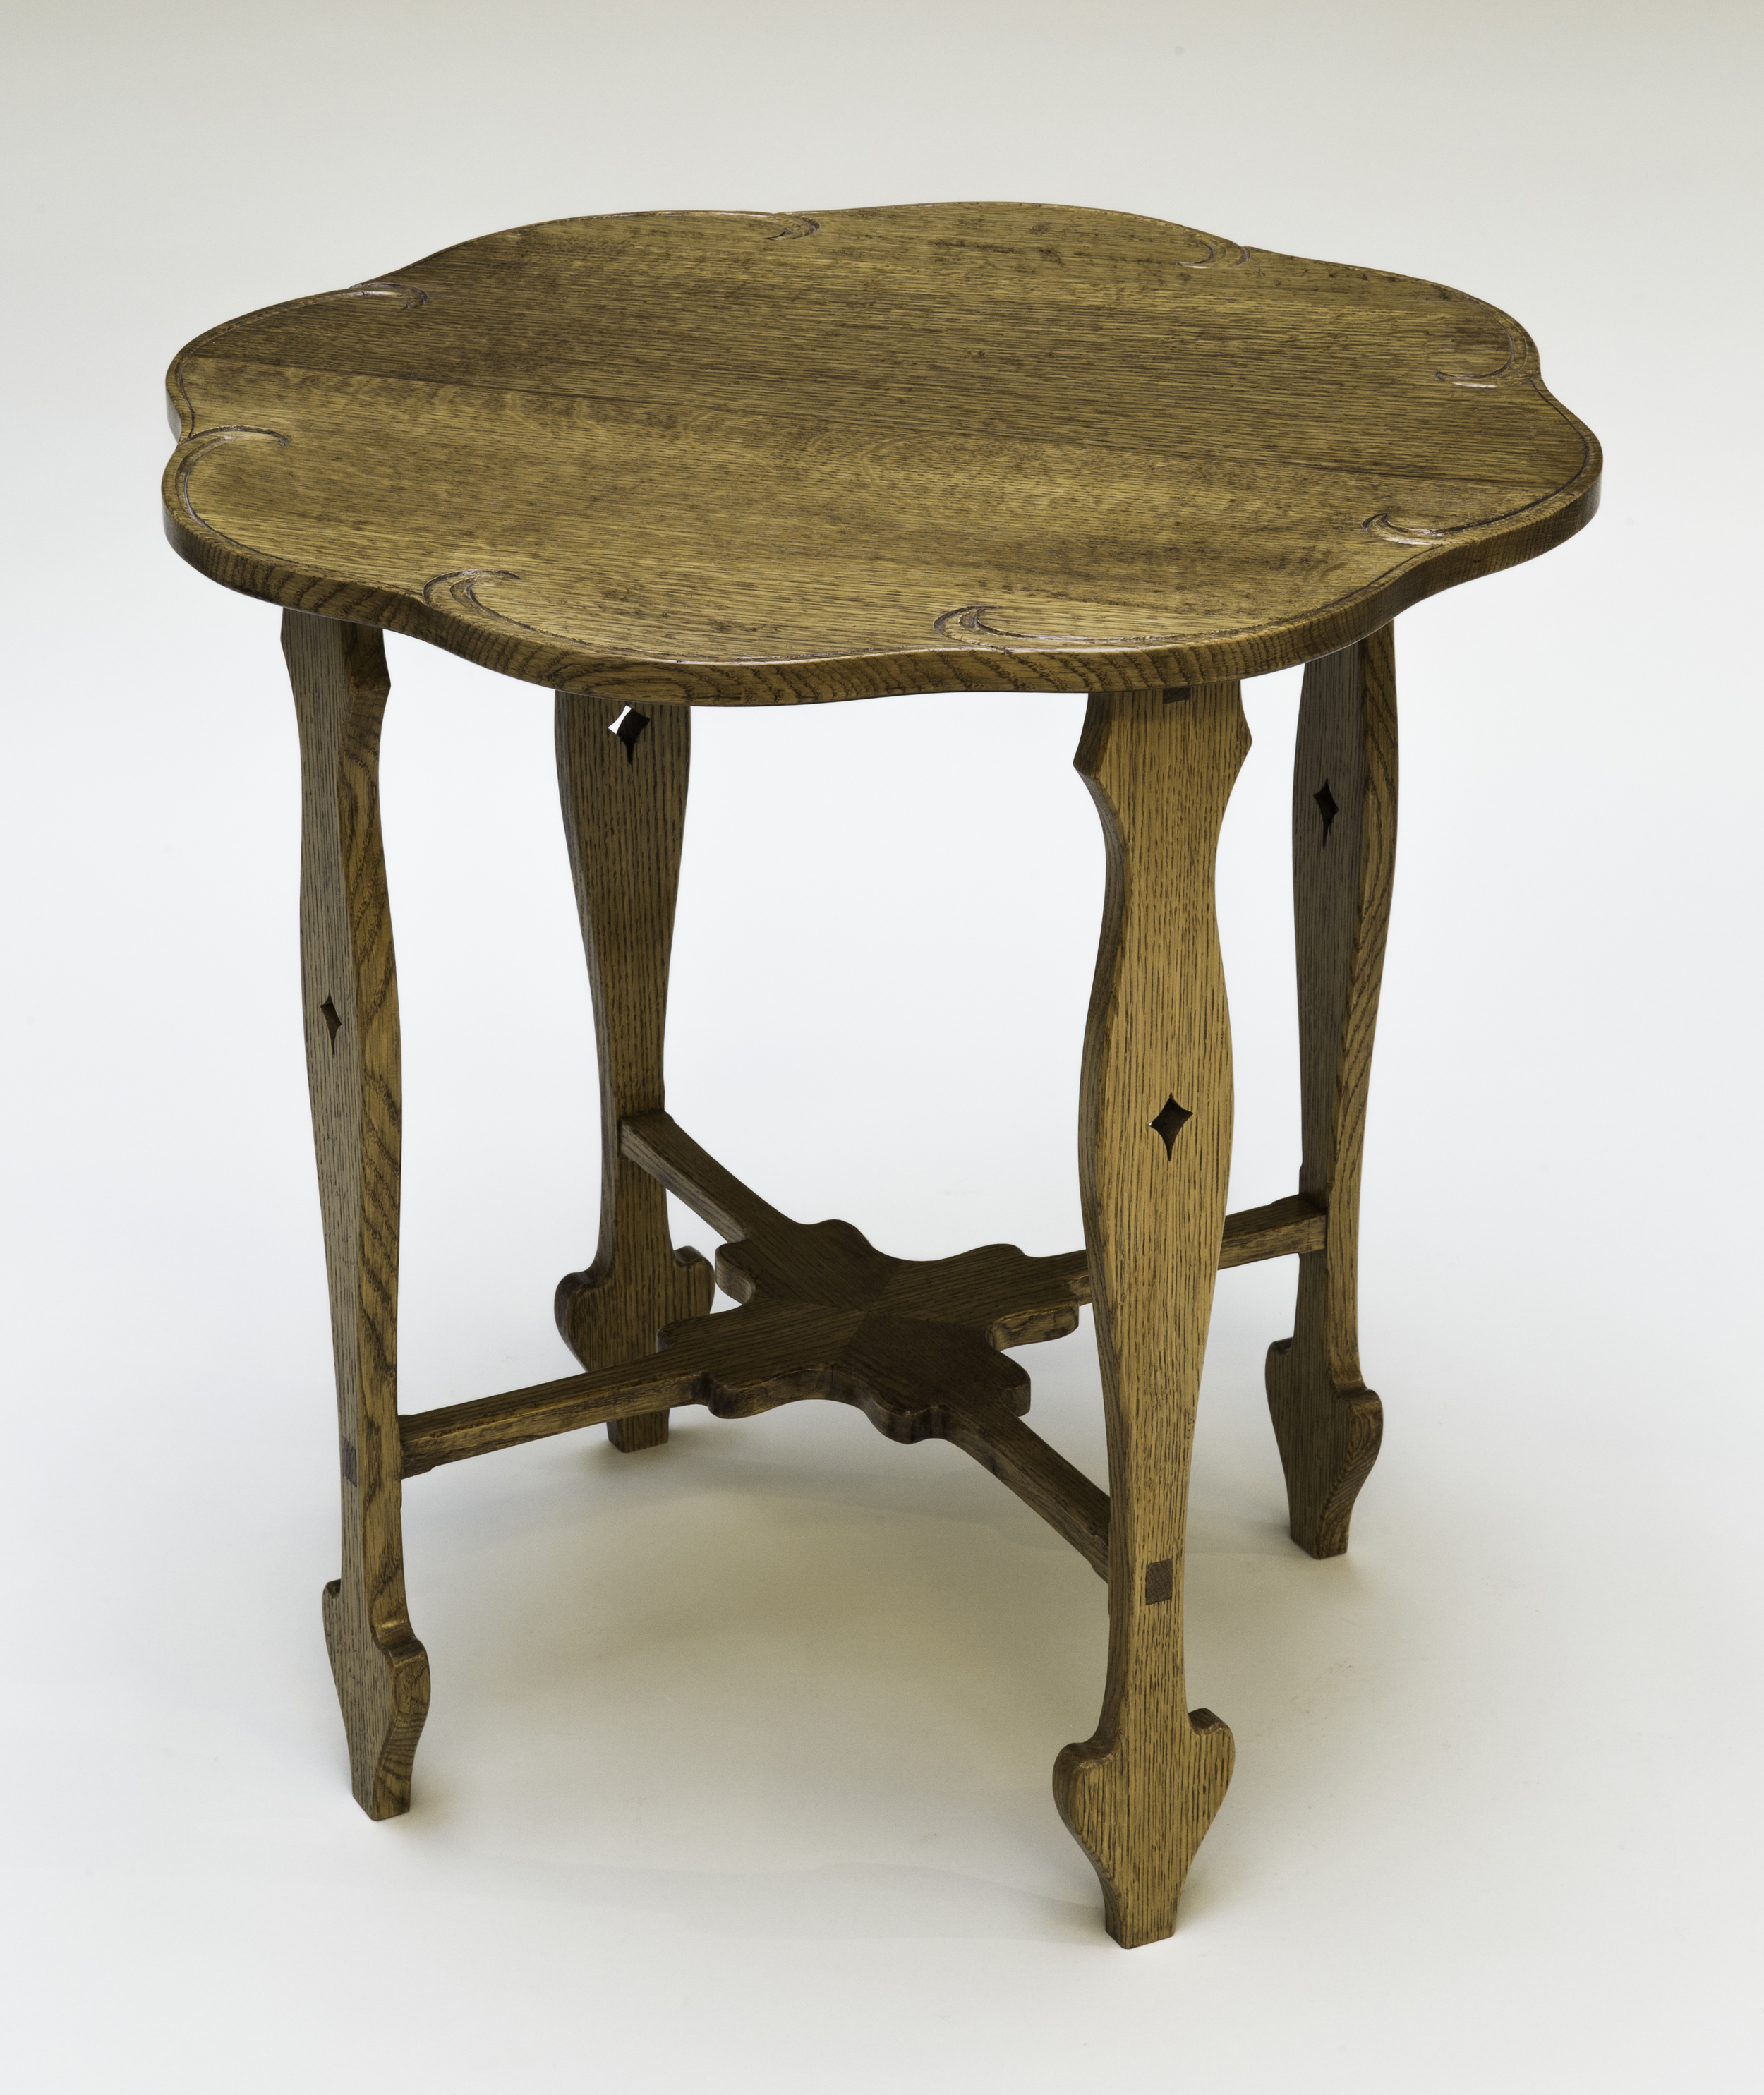 """This piece is based on a Charles Rohlfs table. An interesting feature of this table is the bottom stretcher, which is mortised and tenoned into the legs. The stretchers are joined to each other with a mitered half lap joint. Quarter sawn white oak is the wood used for this table. Blonde and amber shellac was used to even out the wood color. Brown glaze was applied to highlight the grain and to give the table an aged look. An oil and urethane finish was used for a top coat. You can purchase this table for $600.00.Dimension: 24"""" diameter x 24"""" high  (Click on the picture to see how it was put together.)"""